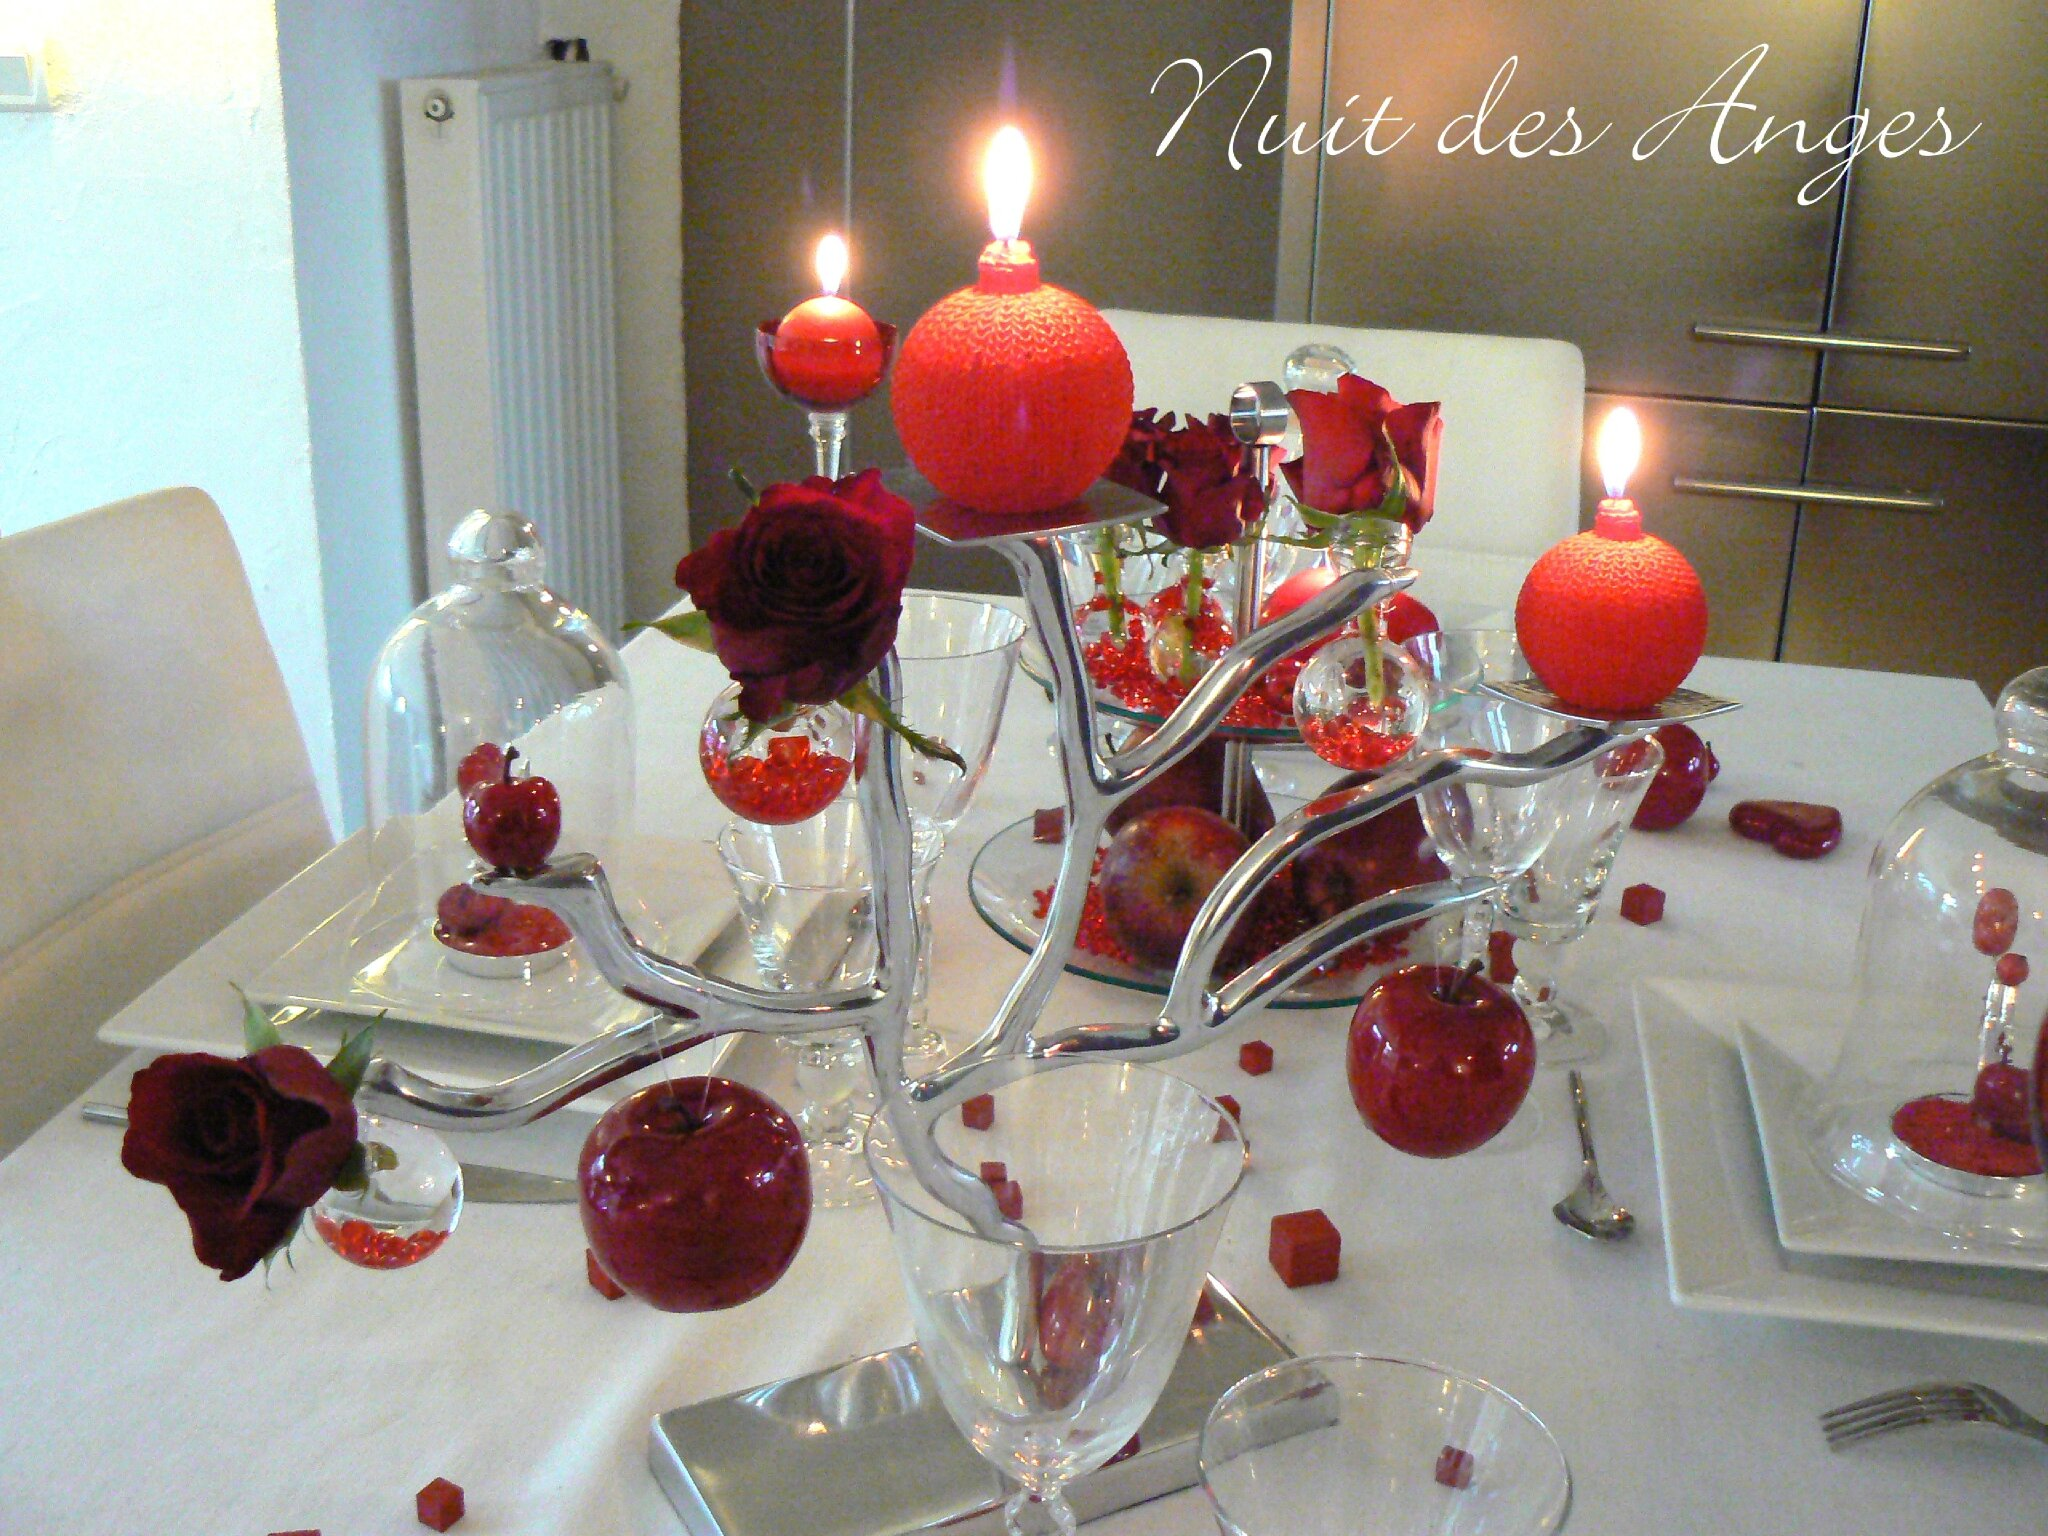 D coration de table rouge pomme d 39 amour nuit des anges - Exemple de decoration ...